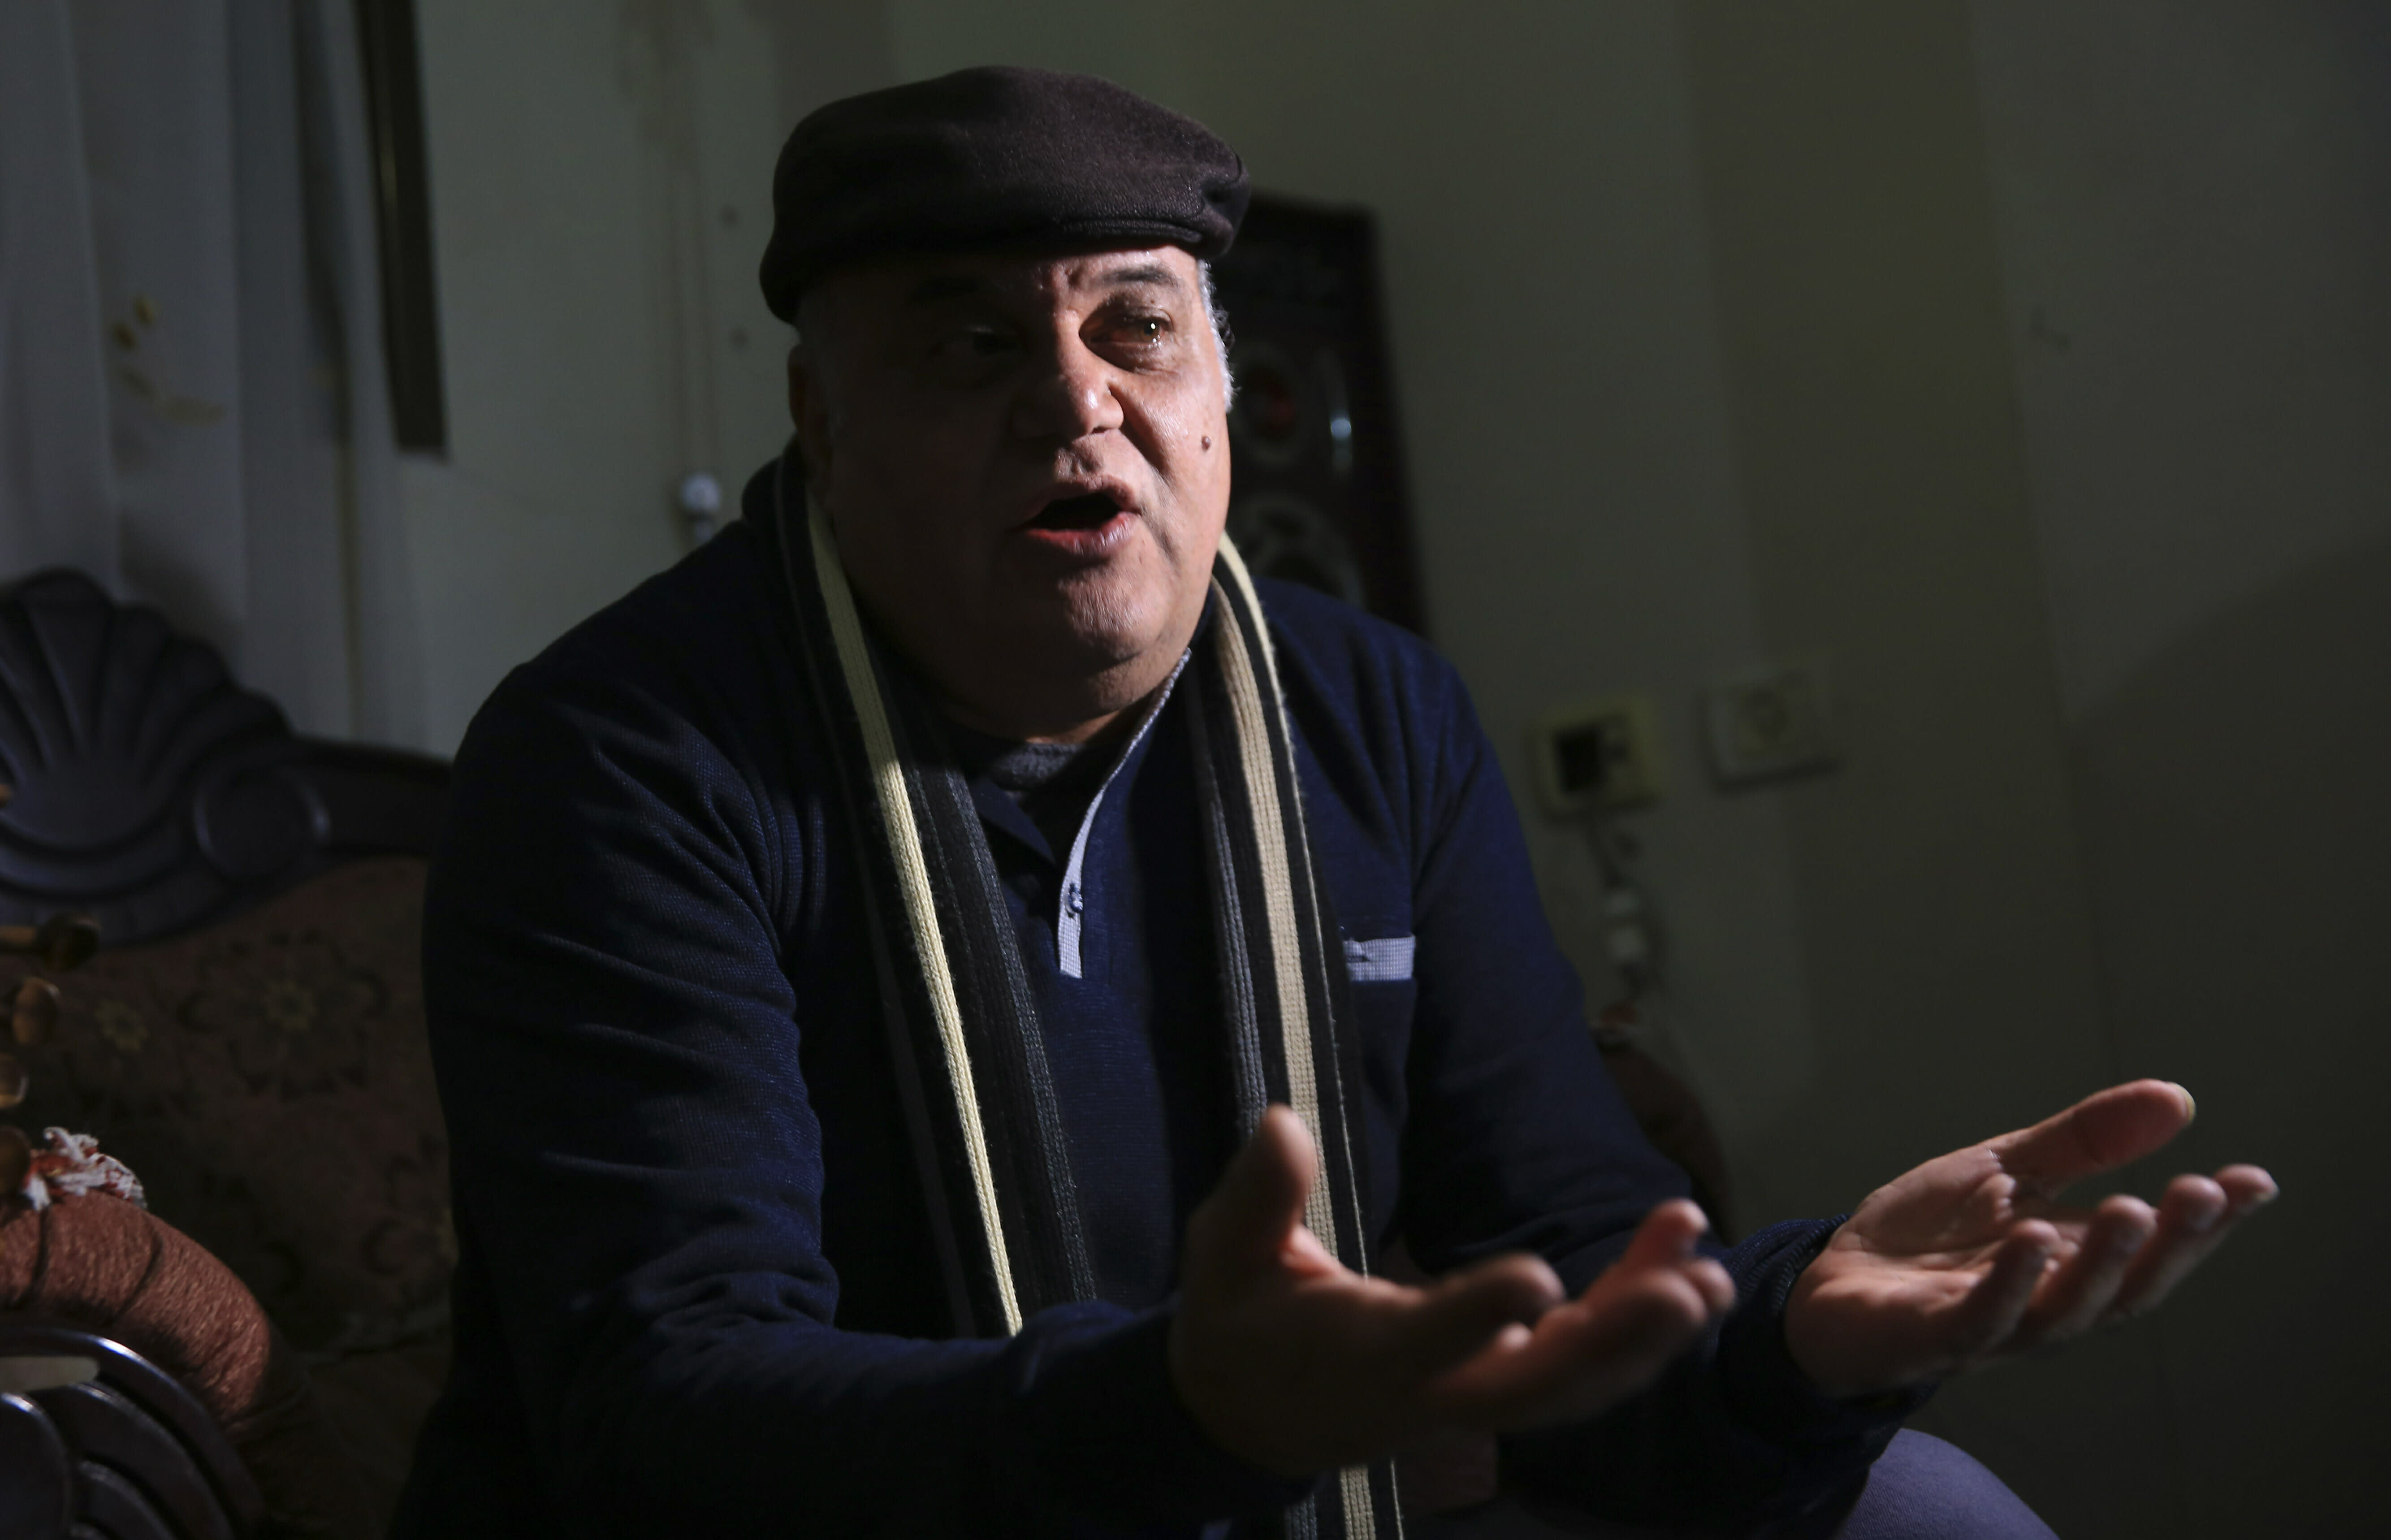 """In this Tuesday, Jan. 29, 2019 photo, Palestinian actor and playwright Ali Abu Yaseen gives an interview in his home at the Shati refugee camp in Gaza City. A new documentary called """"Gaza"""" is hitting the screens at the prestigious Sundance Film Festival this week, providing a colorful glimpse of life in the blockaded Hamas-ruled territory. But one of its main subjects, Abu Yaseen, won't be attending the gathering due to the very circumstances depicted in the film. (AP Photo/Adel Hana)"""